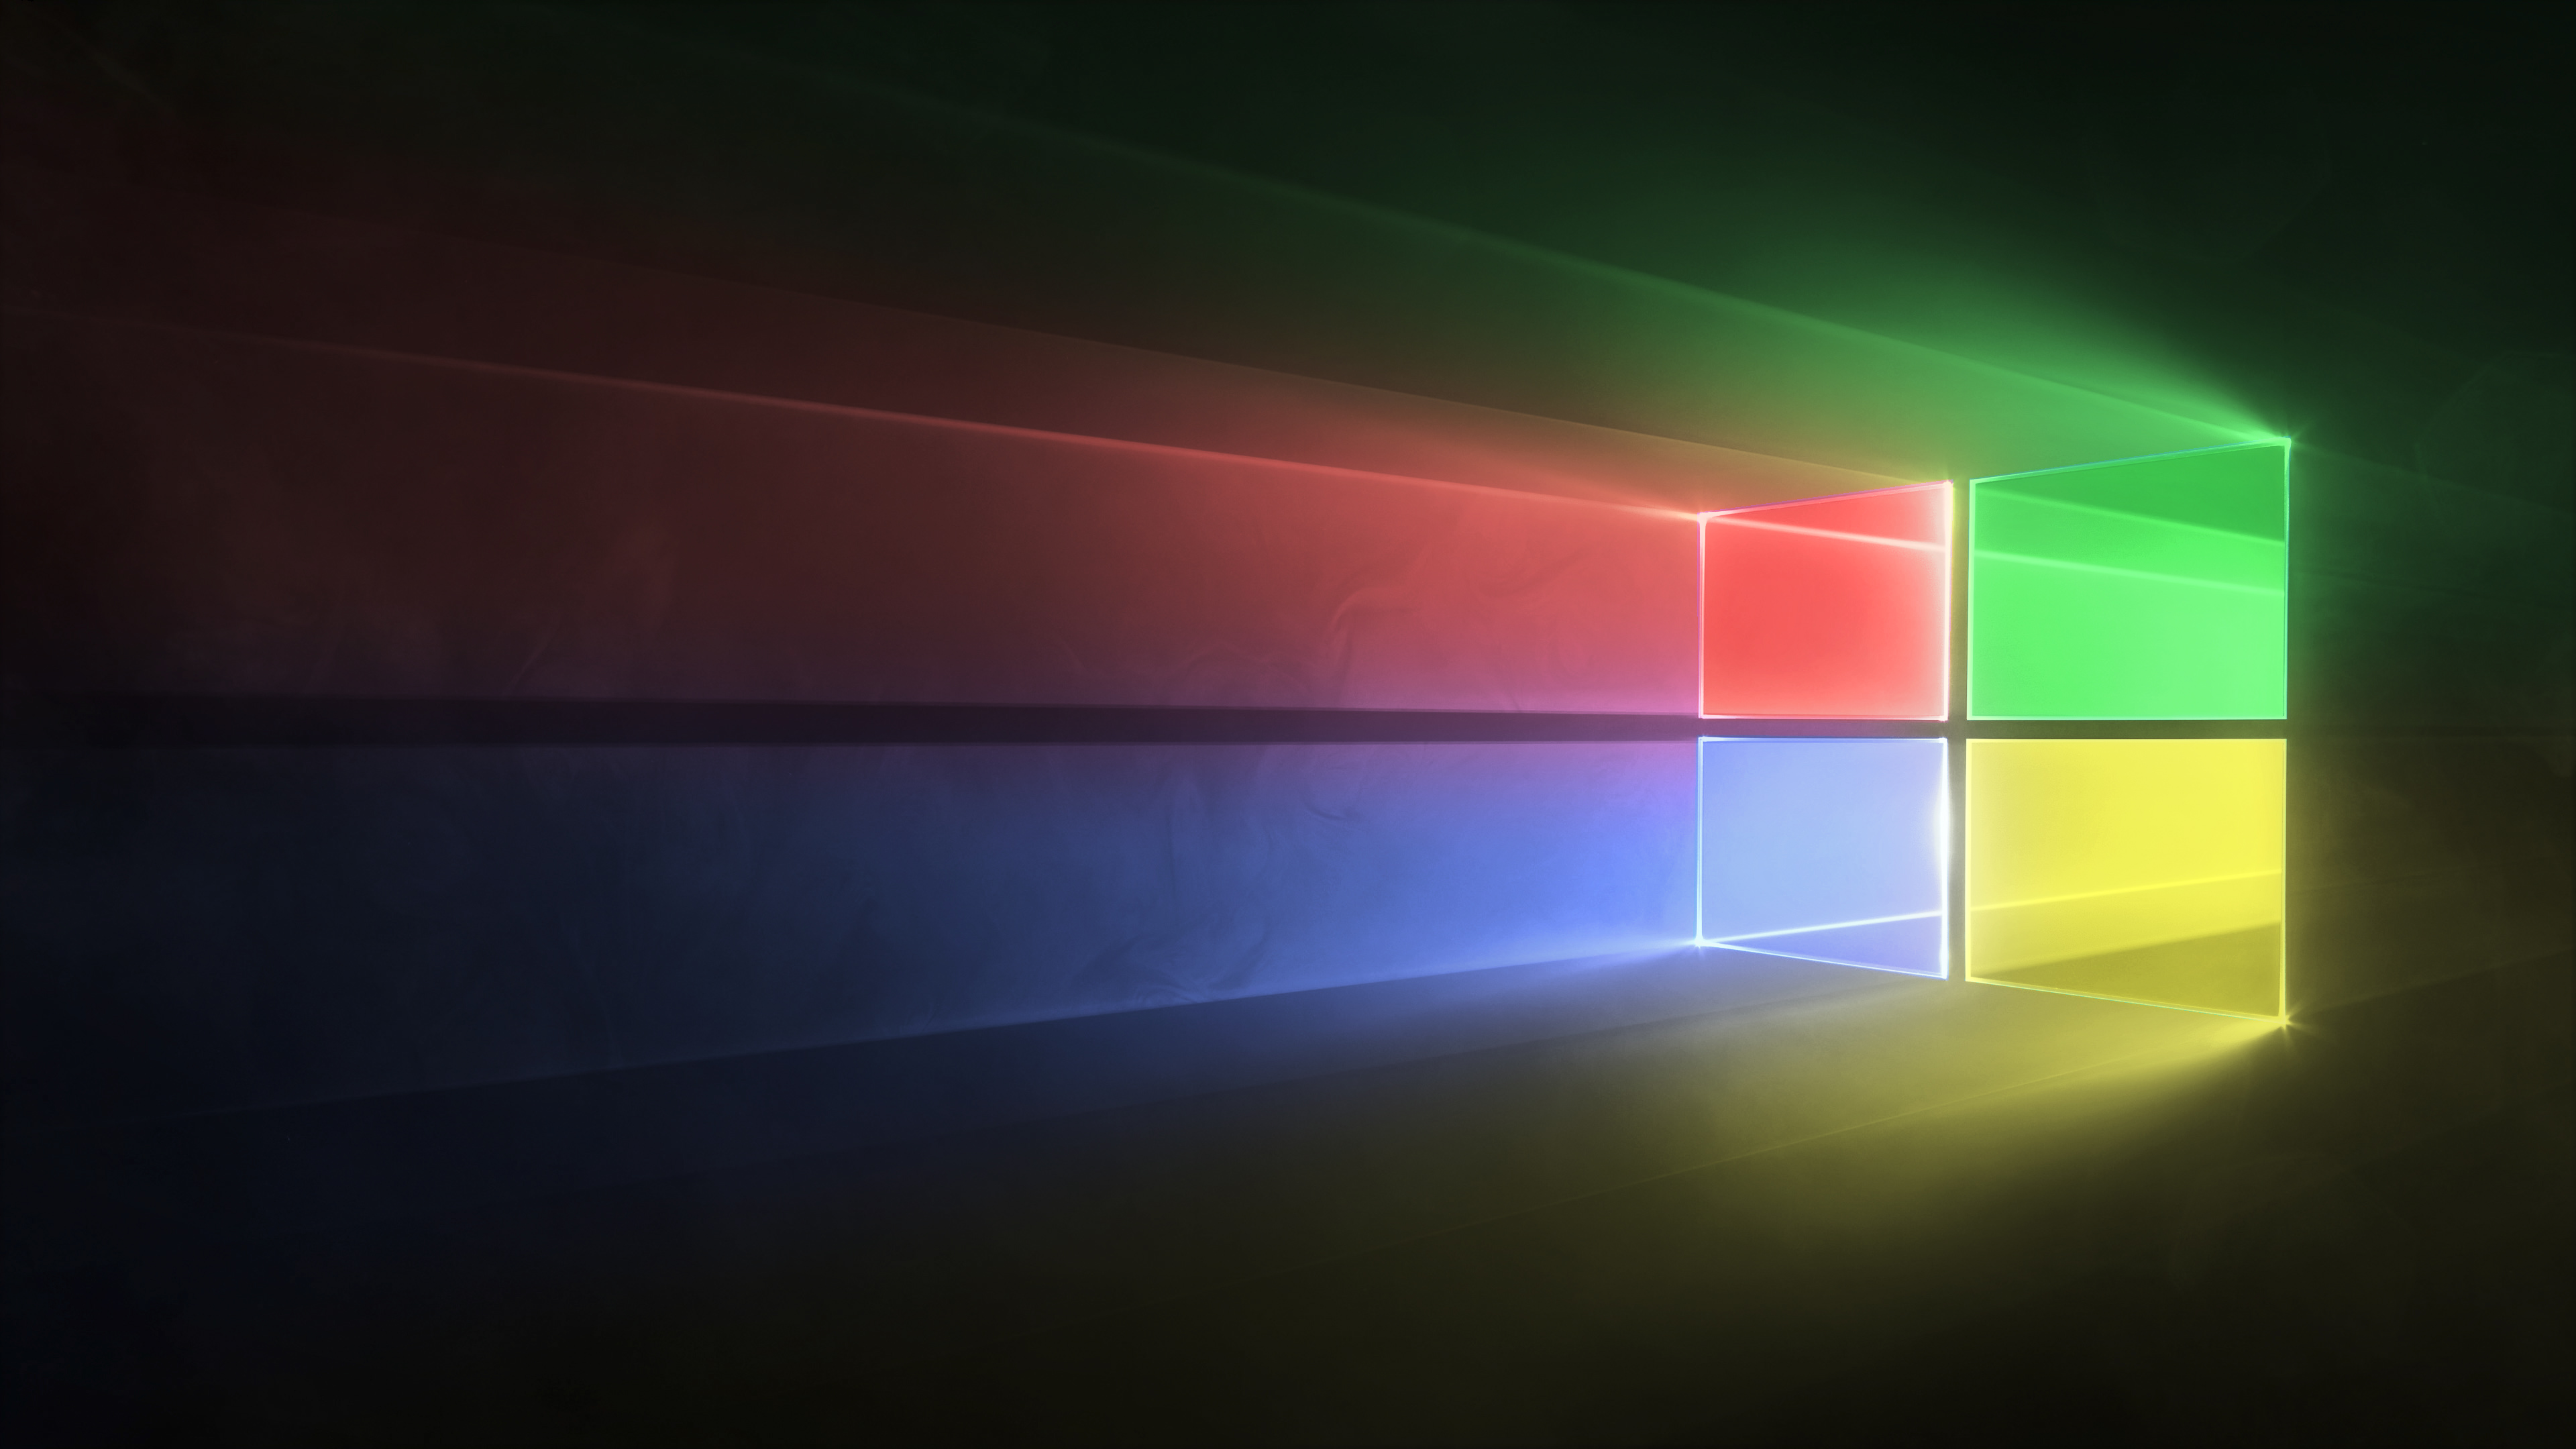 Windows 10 Abstract 4k Hd Computer 4k Wallpapers Images Backgrounds Photos And Pictures